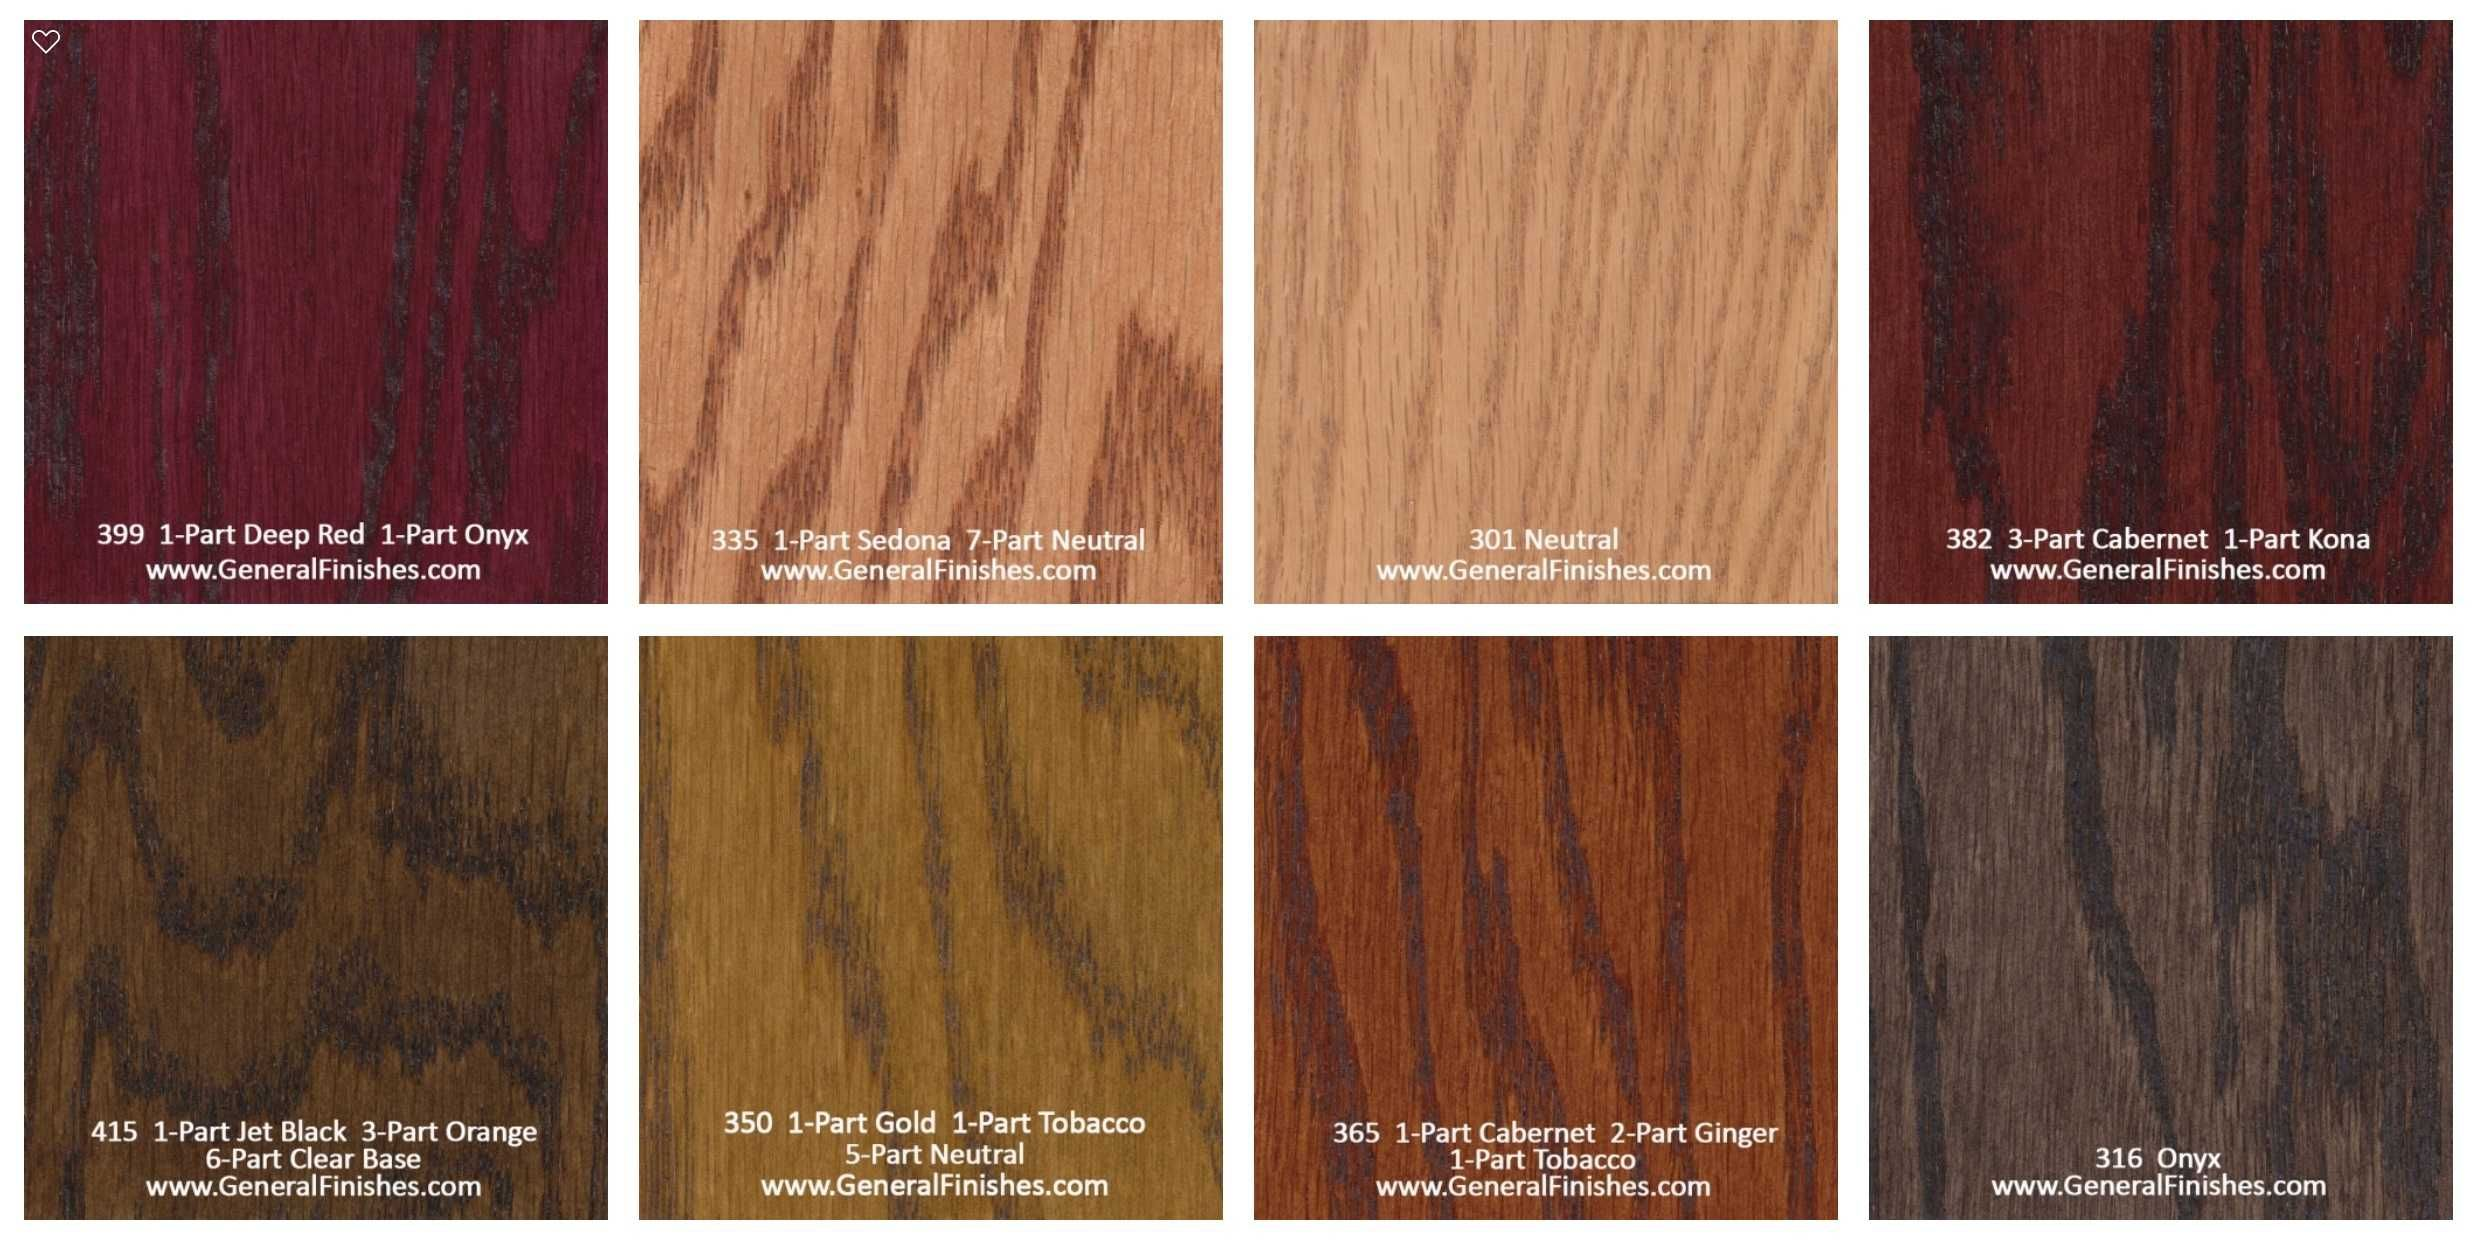 General finishes pro floor stain color swatch chart for for Color of hardwood floors